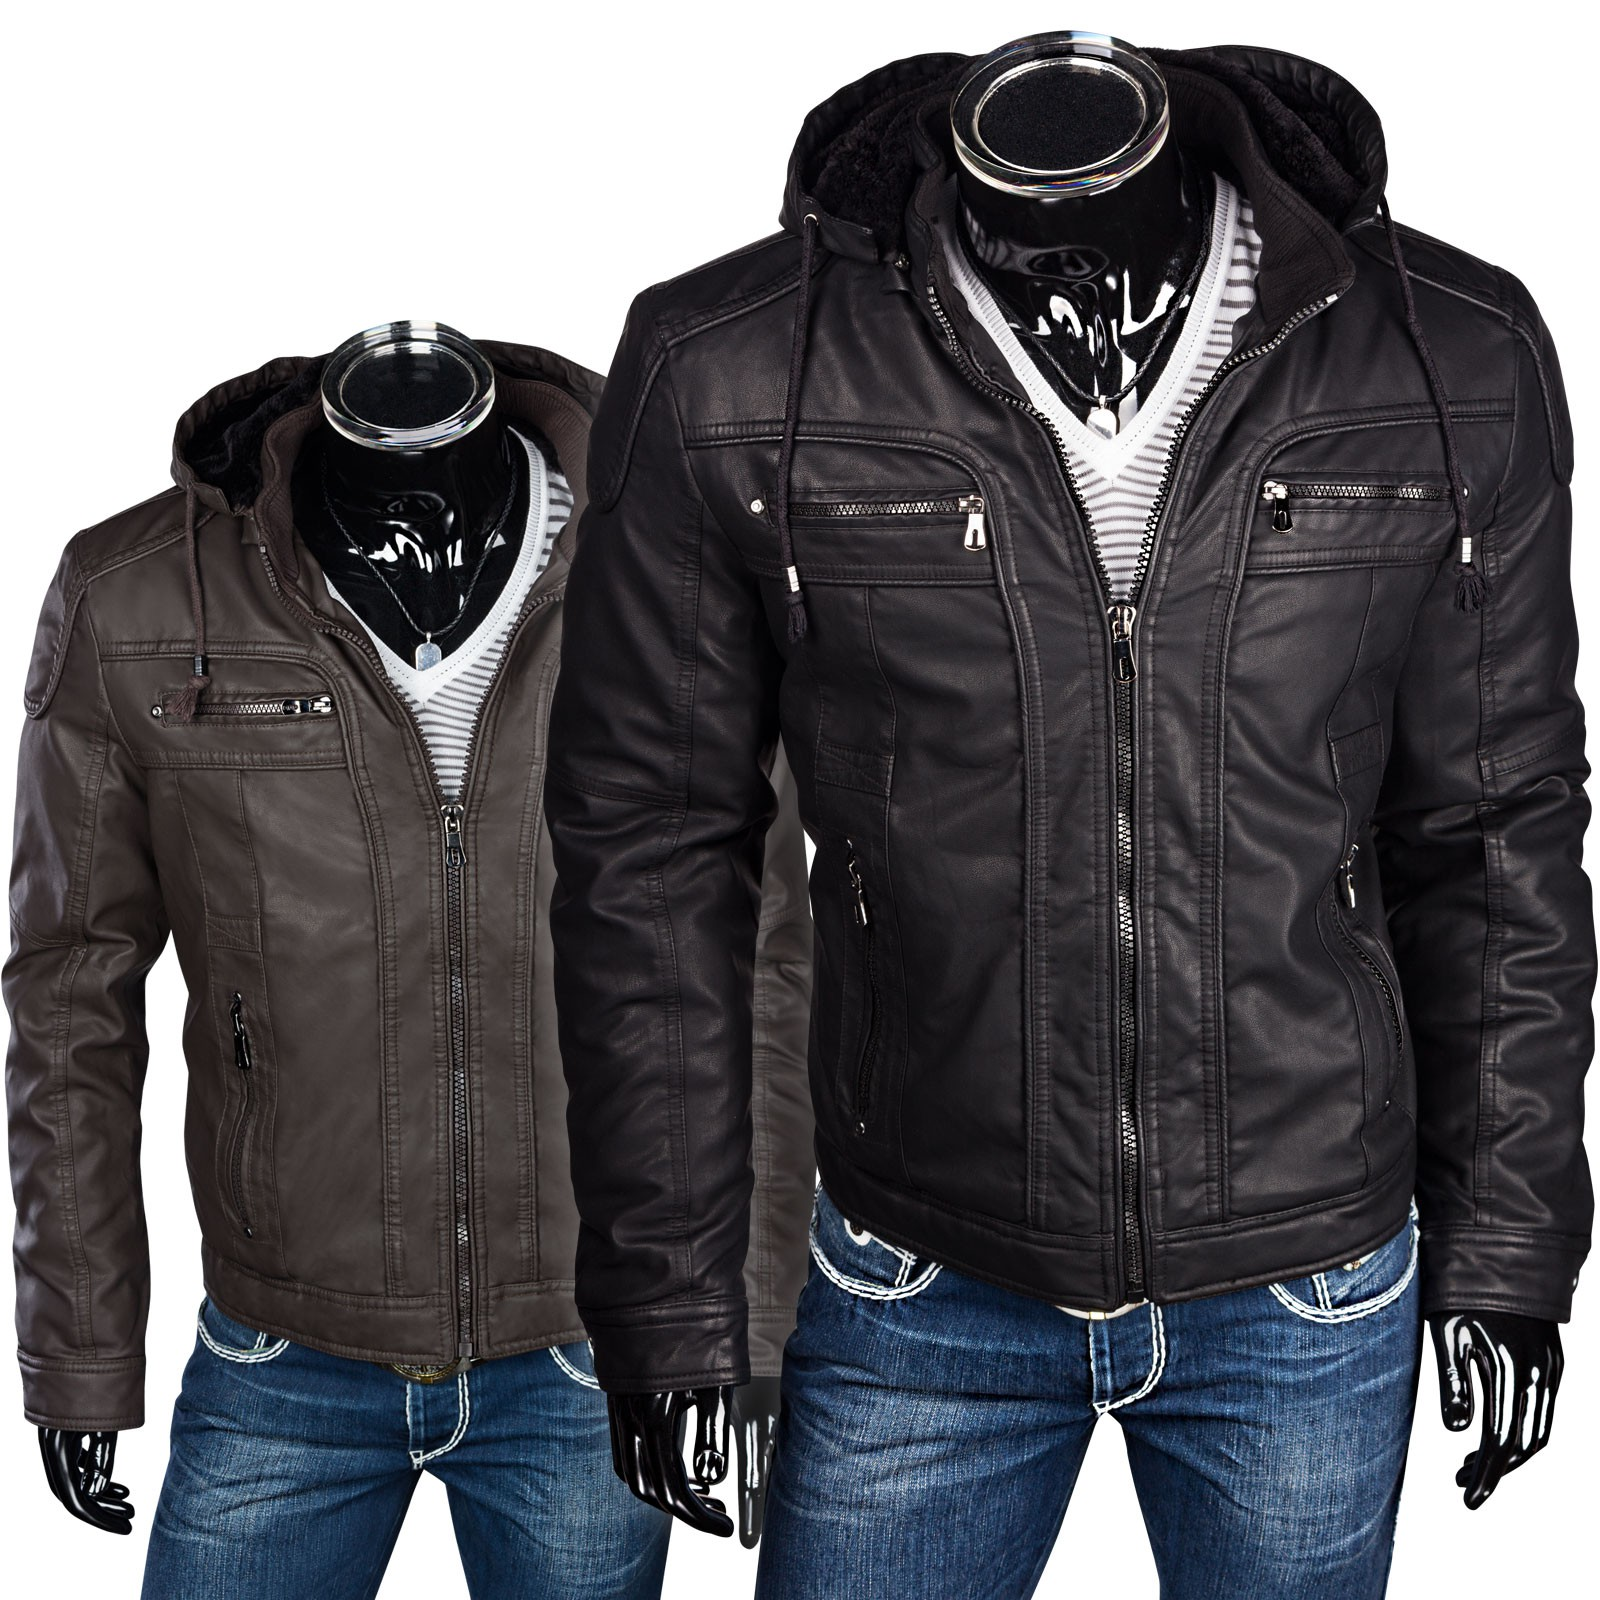 herren winterlederjacke pu lederjacke mit kapuze. Black Bedroom Furniture Sets. Home Design Ideas